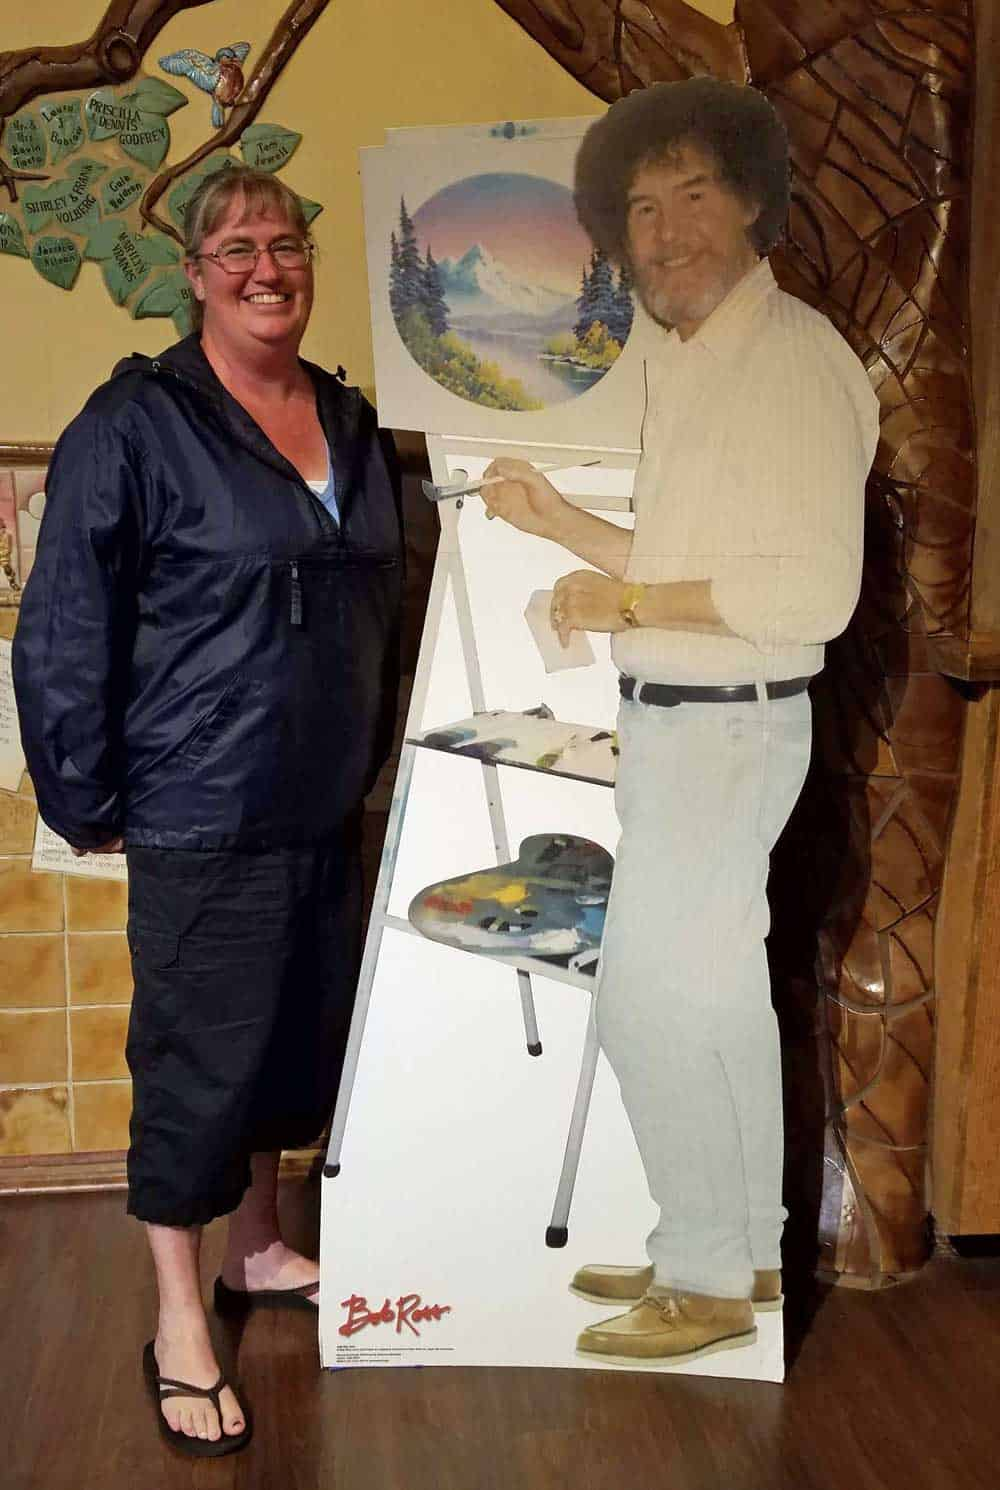 author is posing with a cardboard cutout of Bob Ross